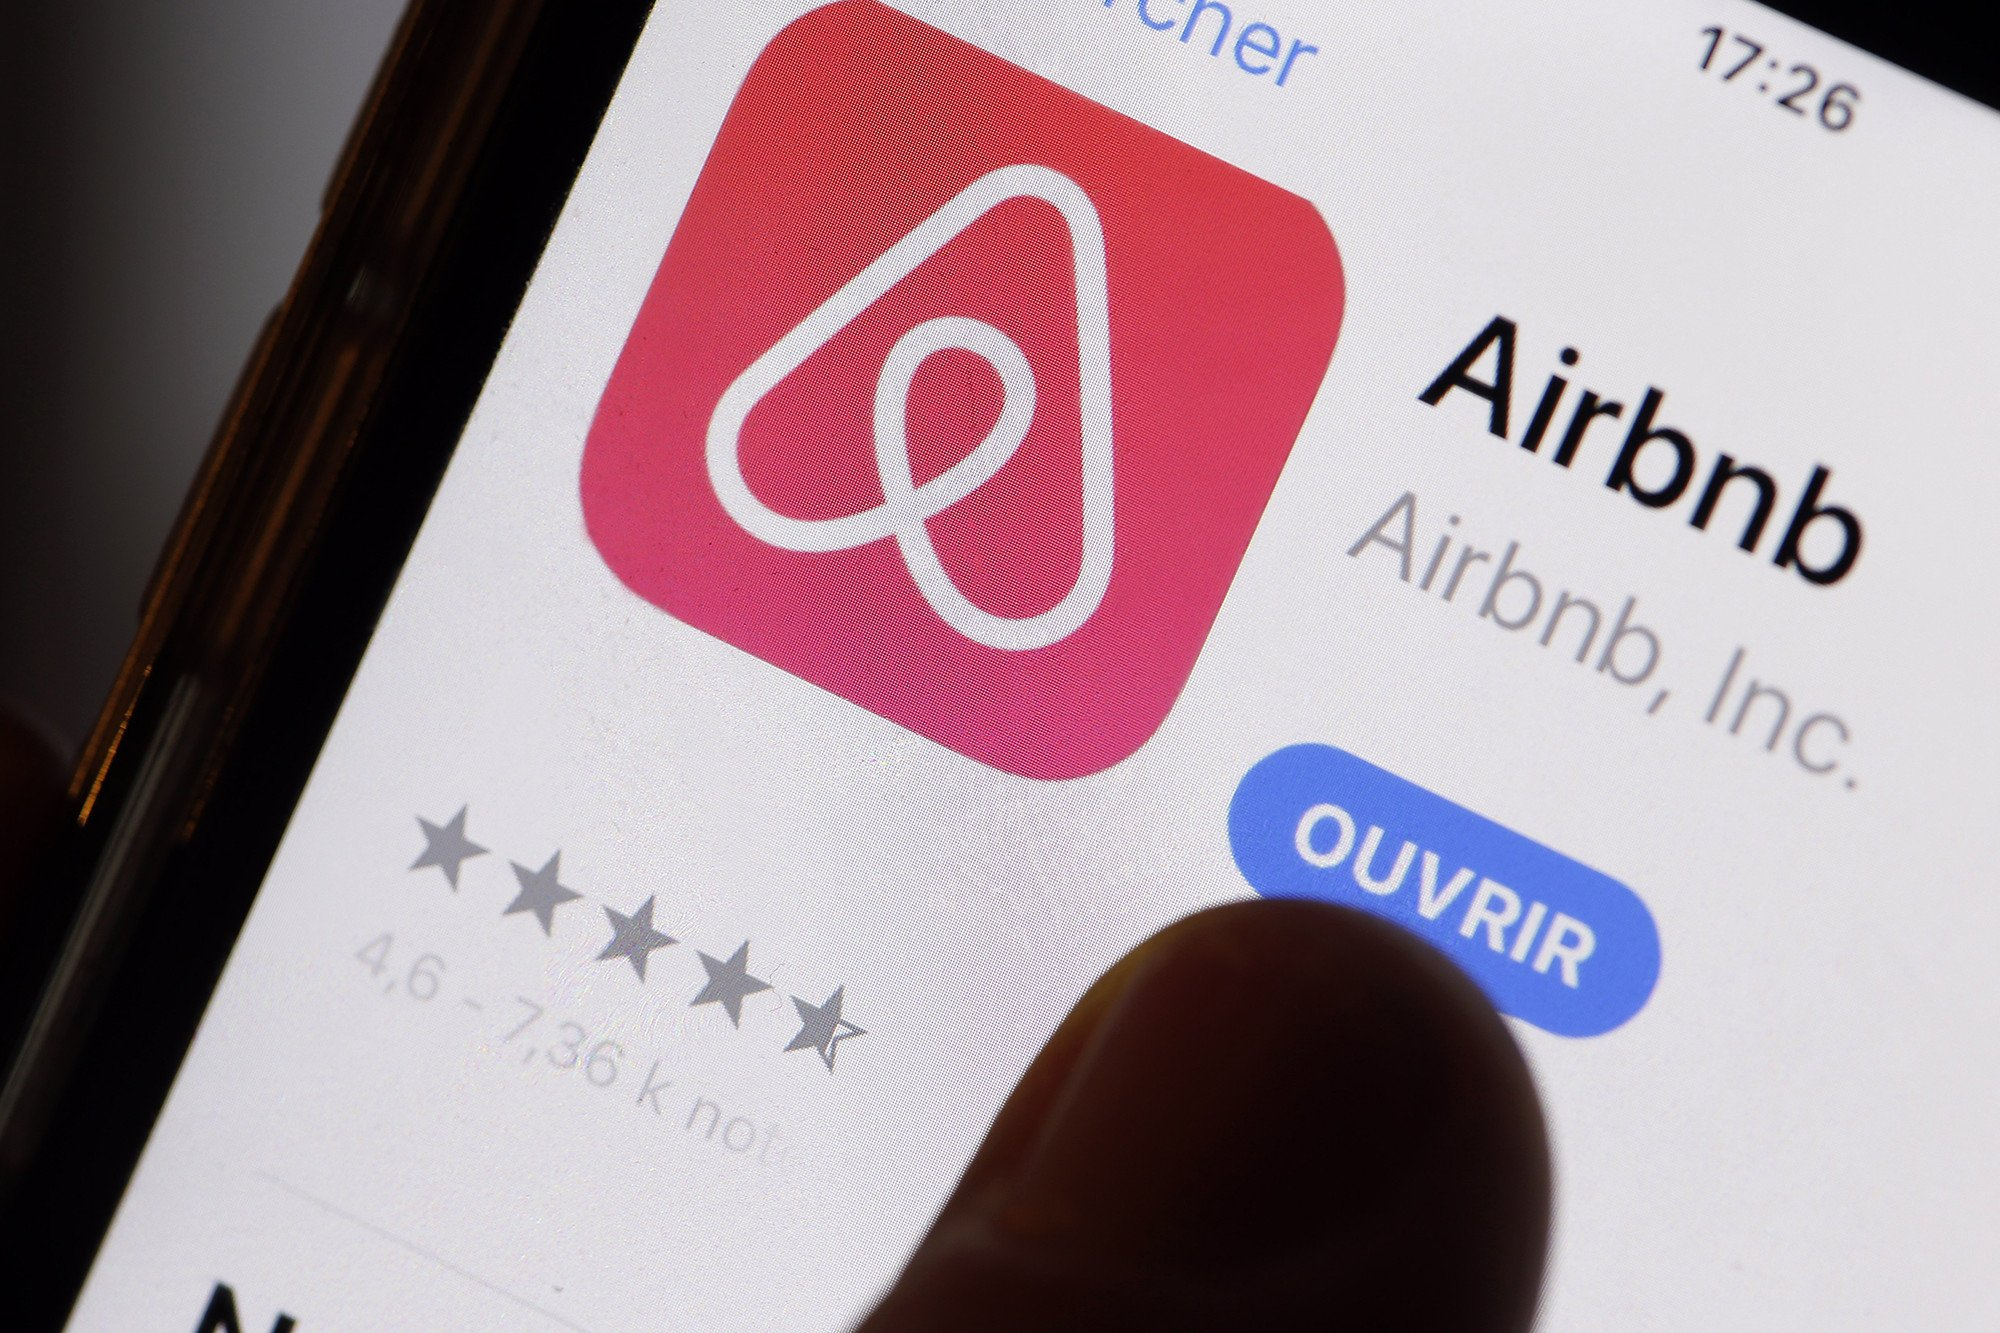 Airbnb says it won't have IPO in 2018, names first COO